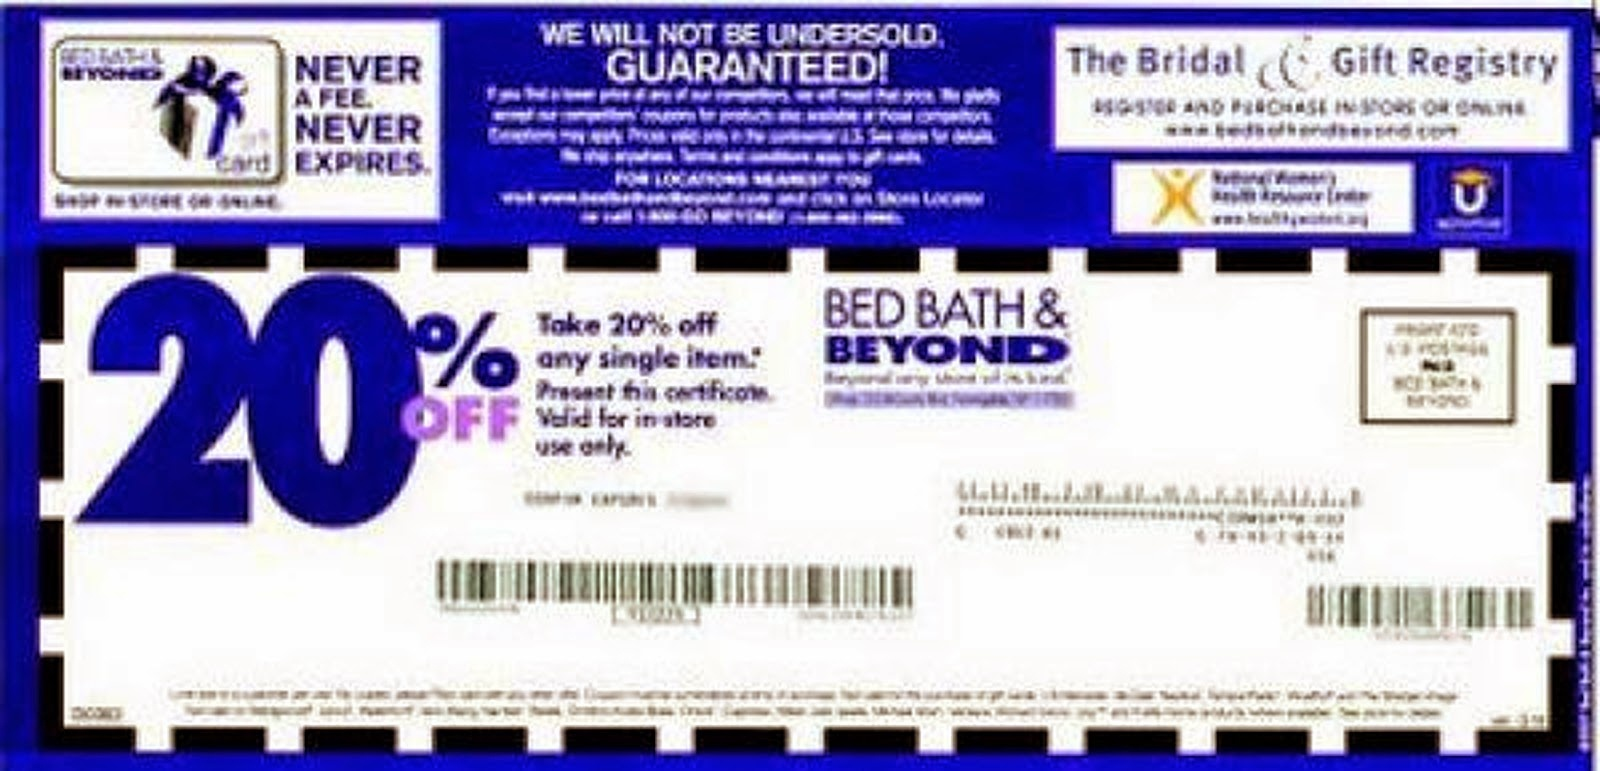 Bed Bath And Beyond Coupons | Bed Bath And Beyond Coupons - Free Printable Bed Bath And Beyond 20 Off Coupon